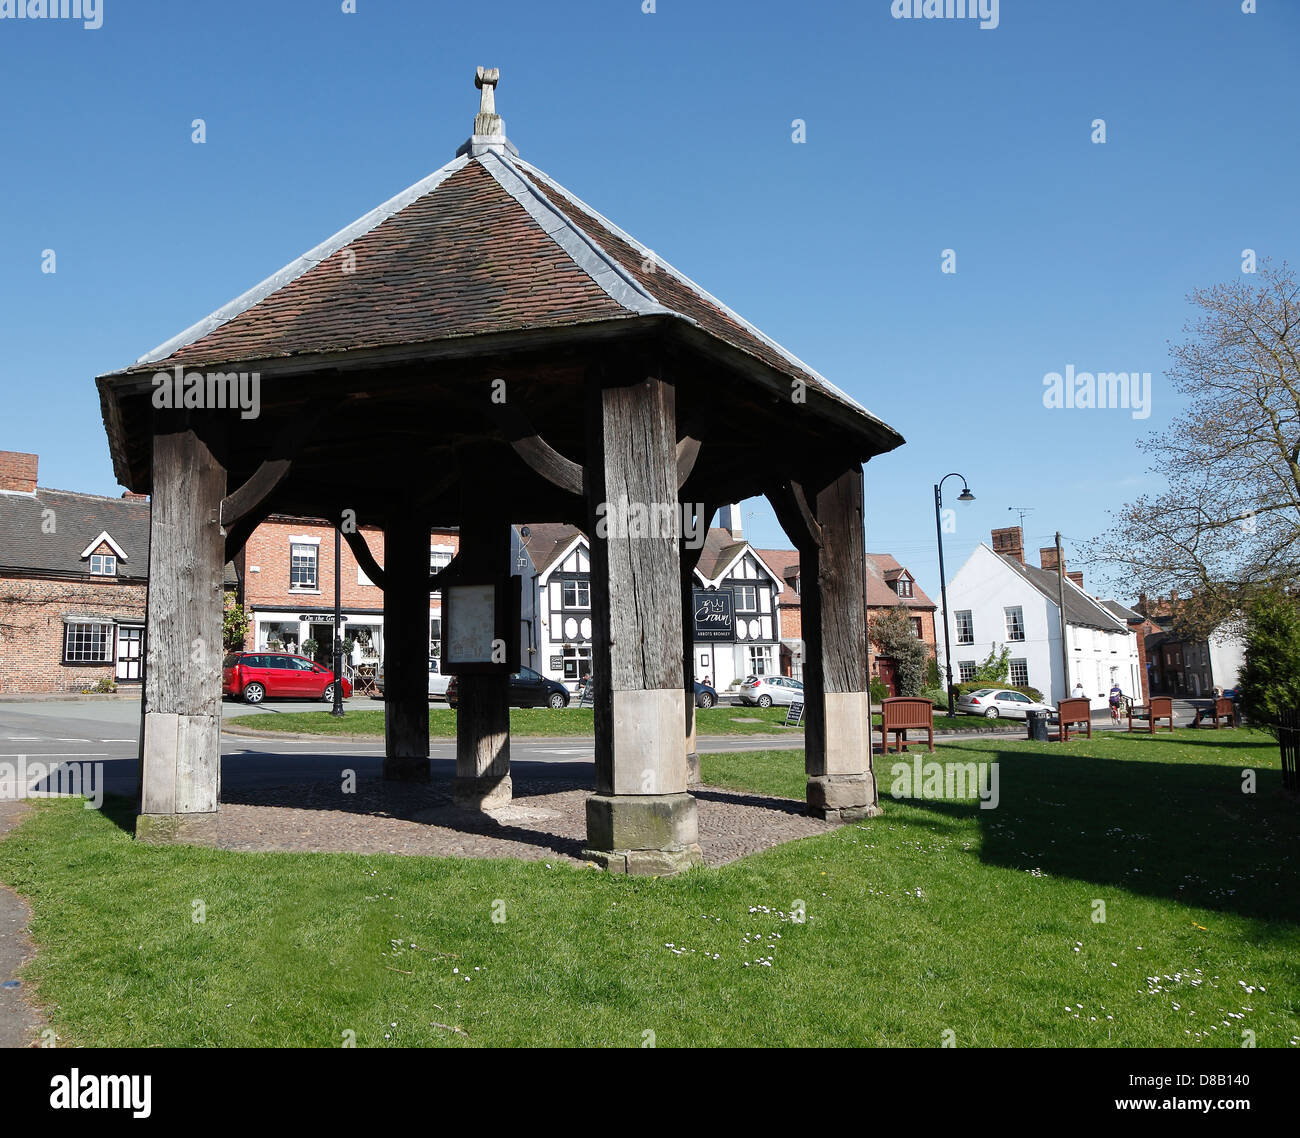 Butter Cross Abbots Bromley Staffordshire England Great Britain - Stock Image